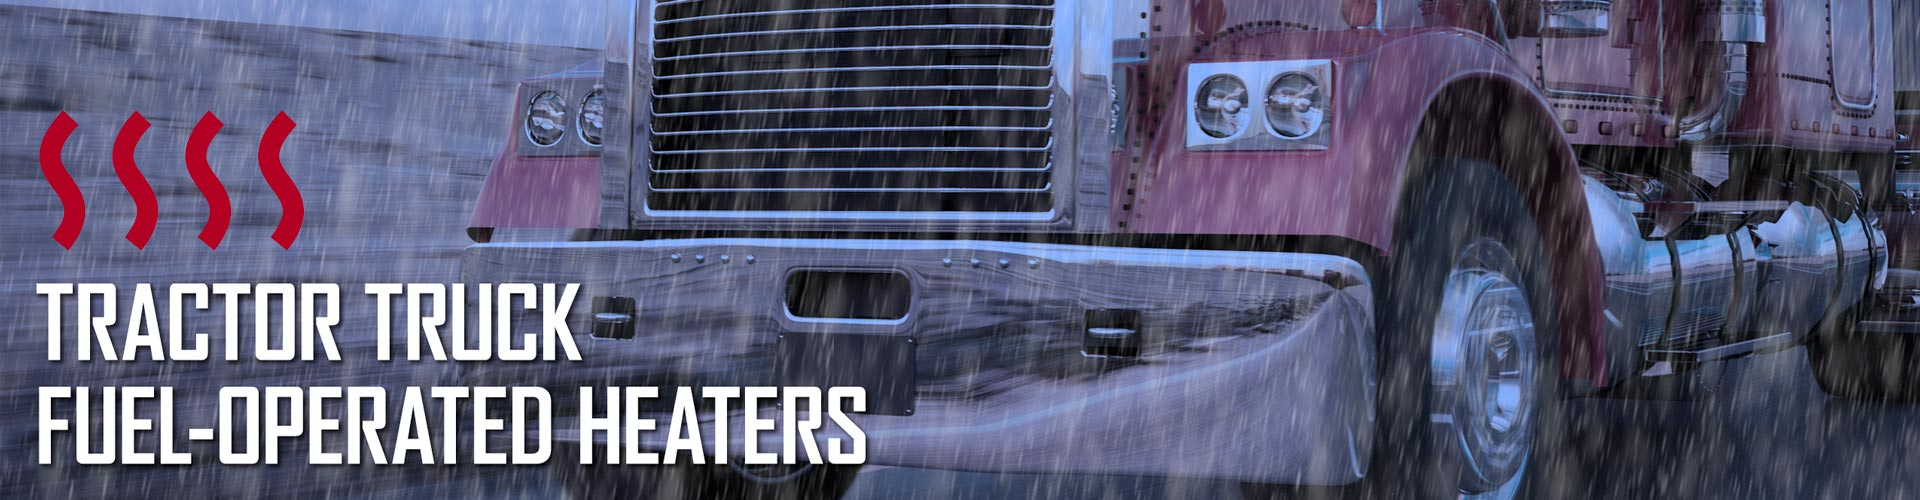 Fuel operated heaters for Mercedes-Benz Sprinter, RAM ProMaster, and Ford Transit